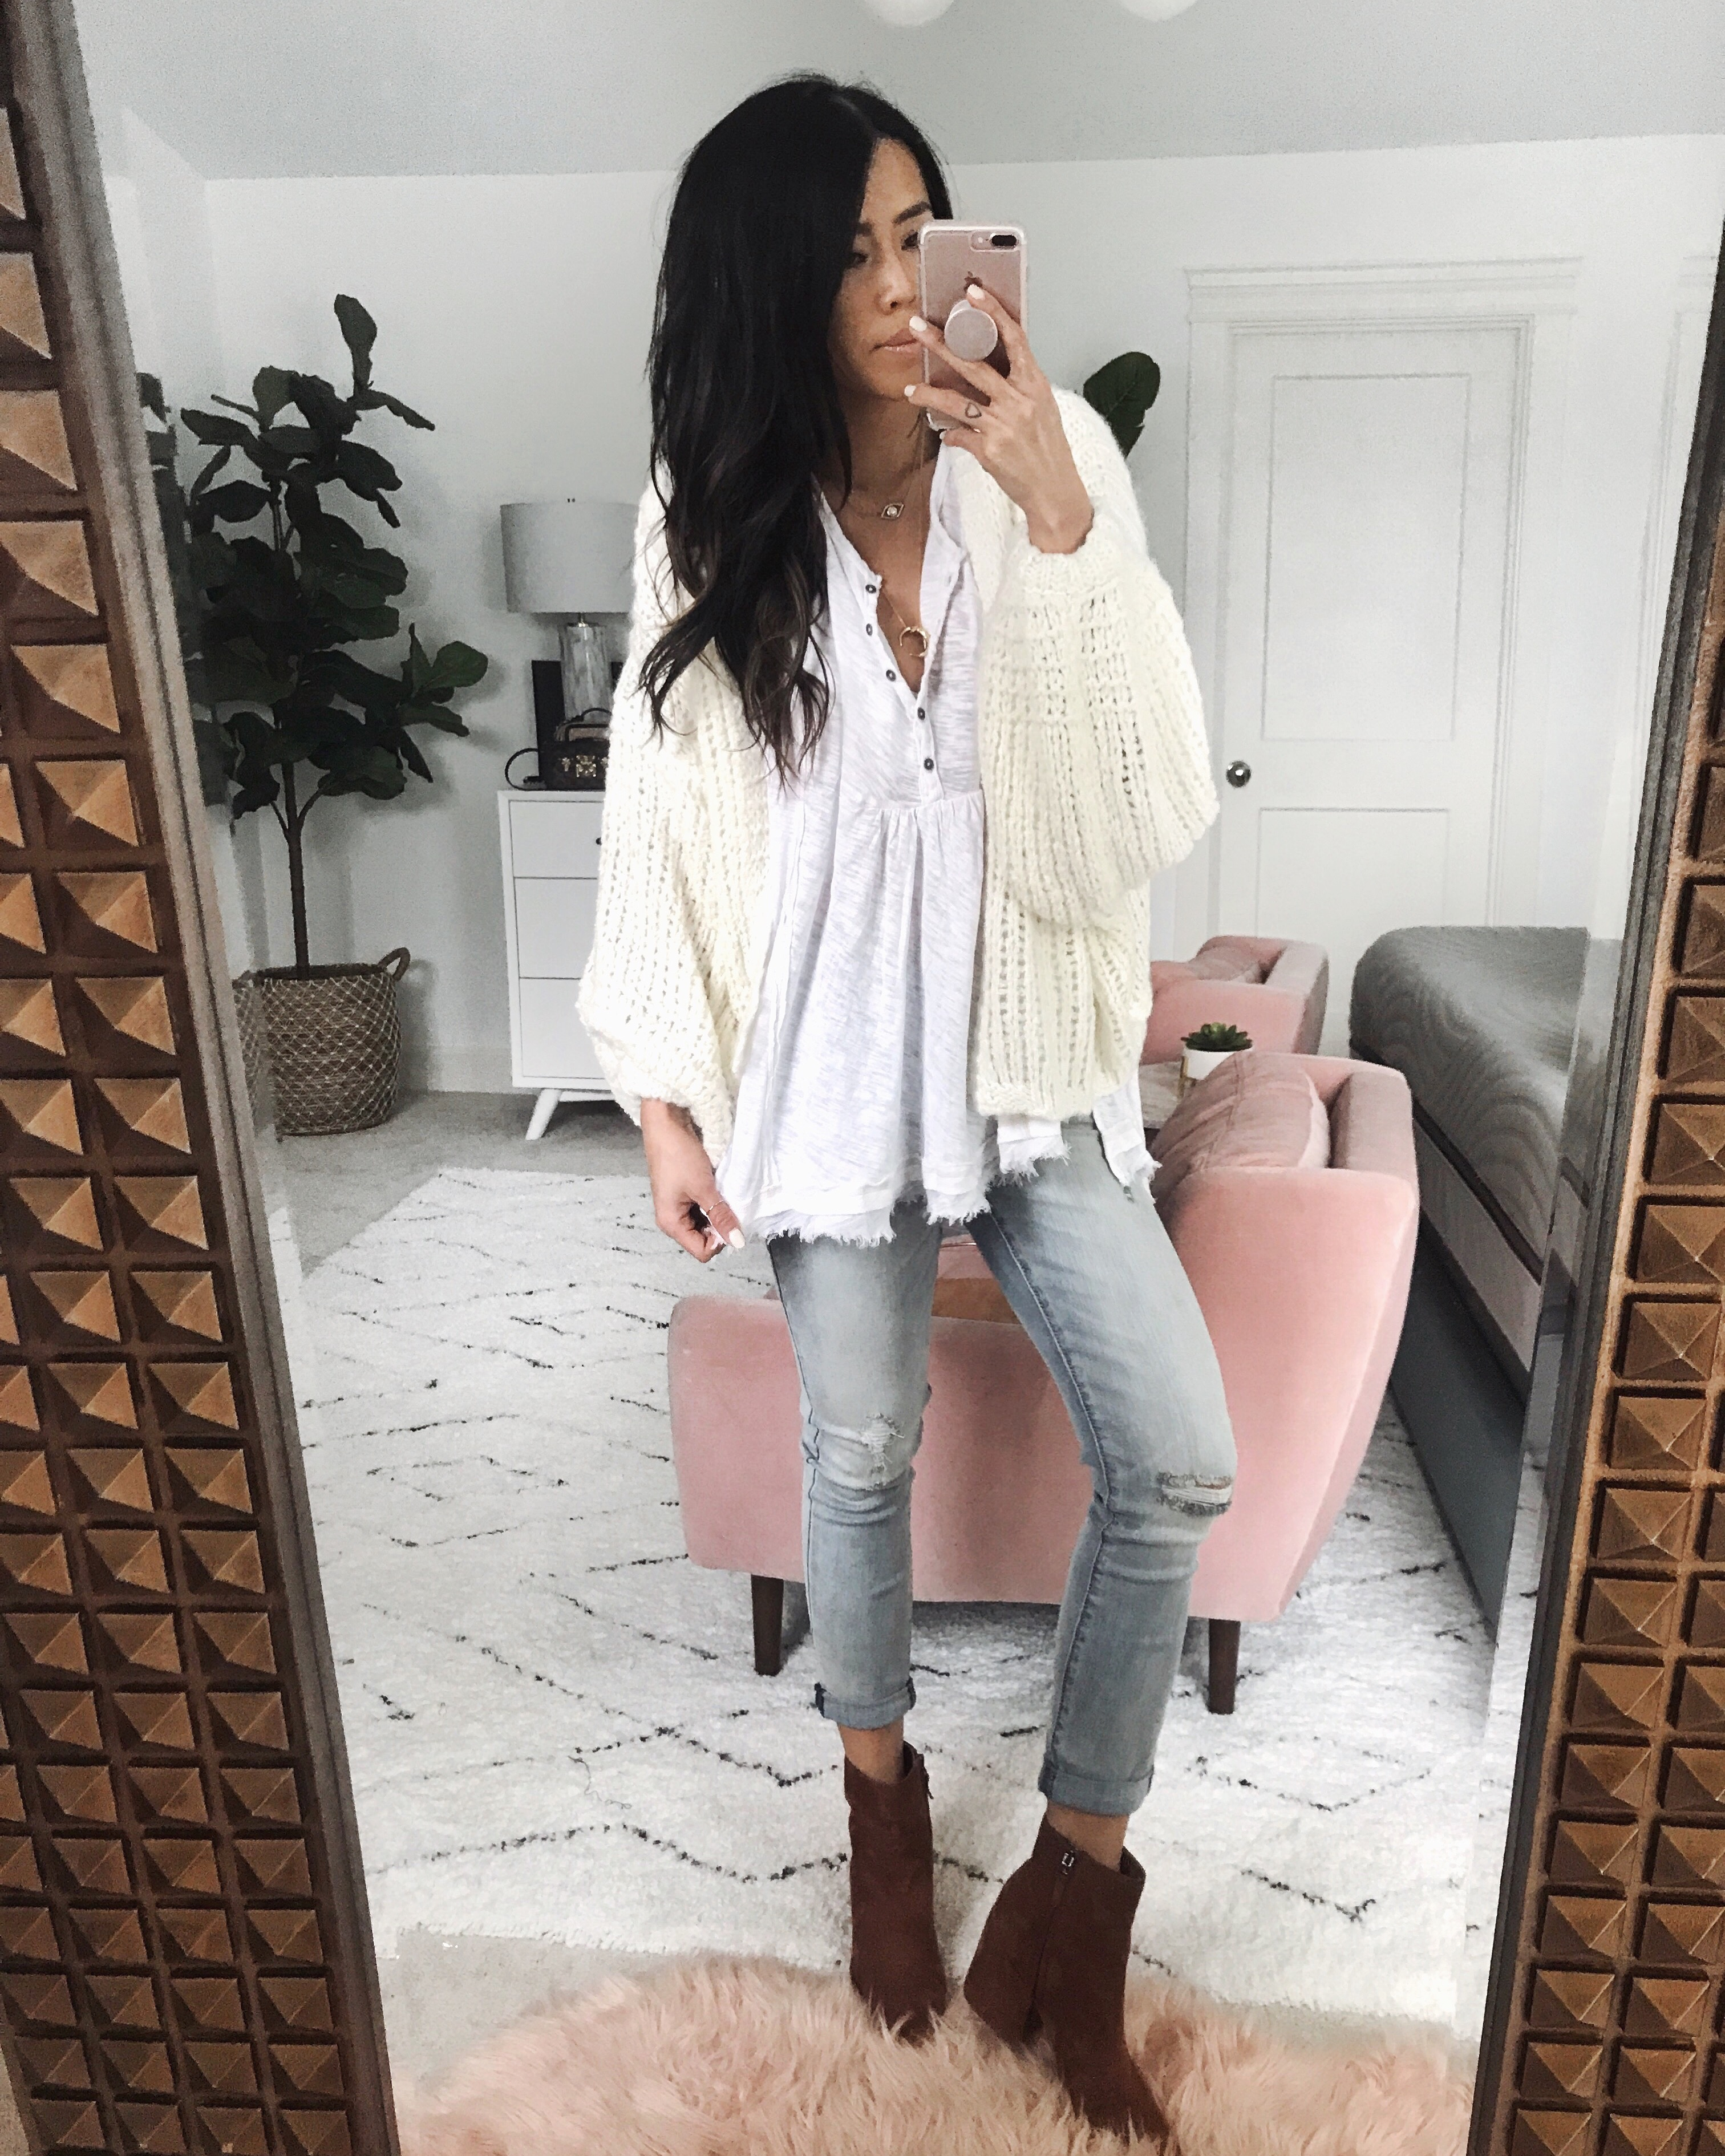 Gypsy Tan Instagram Round Up Outfits